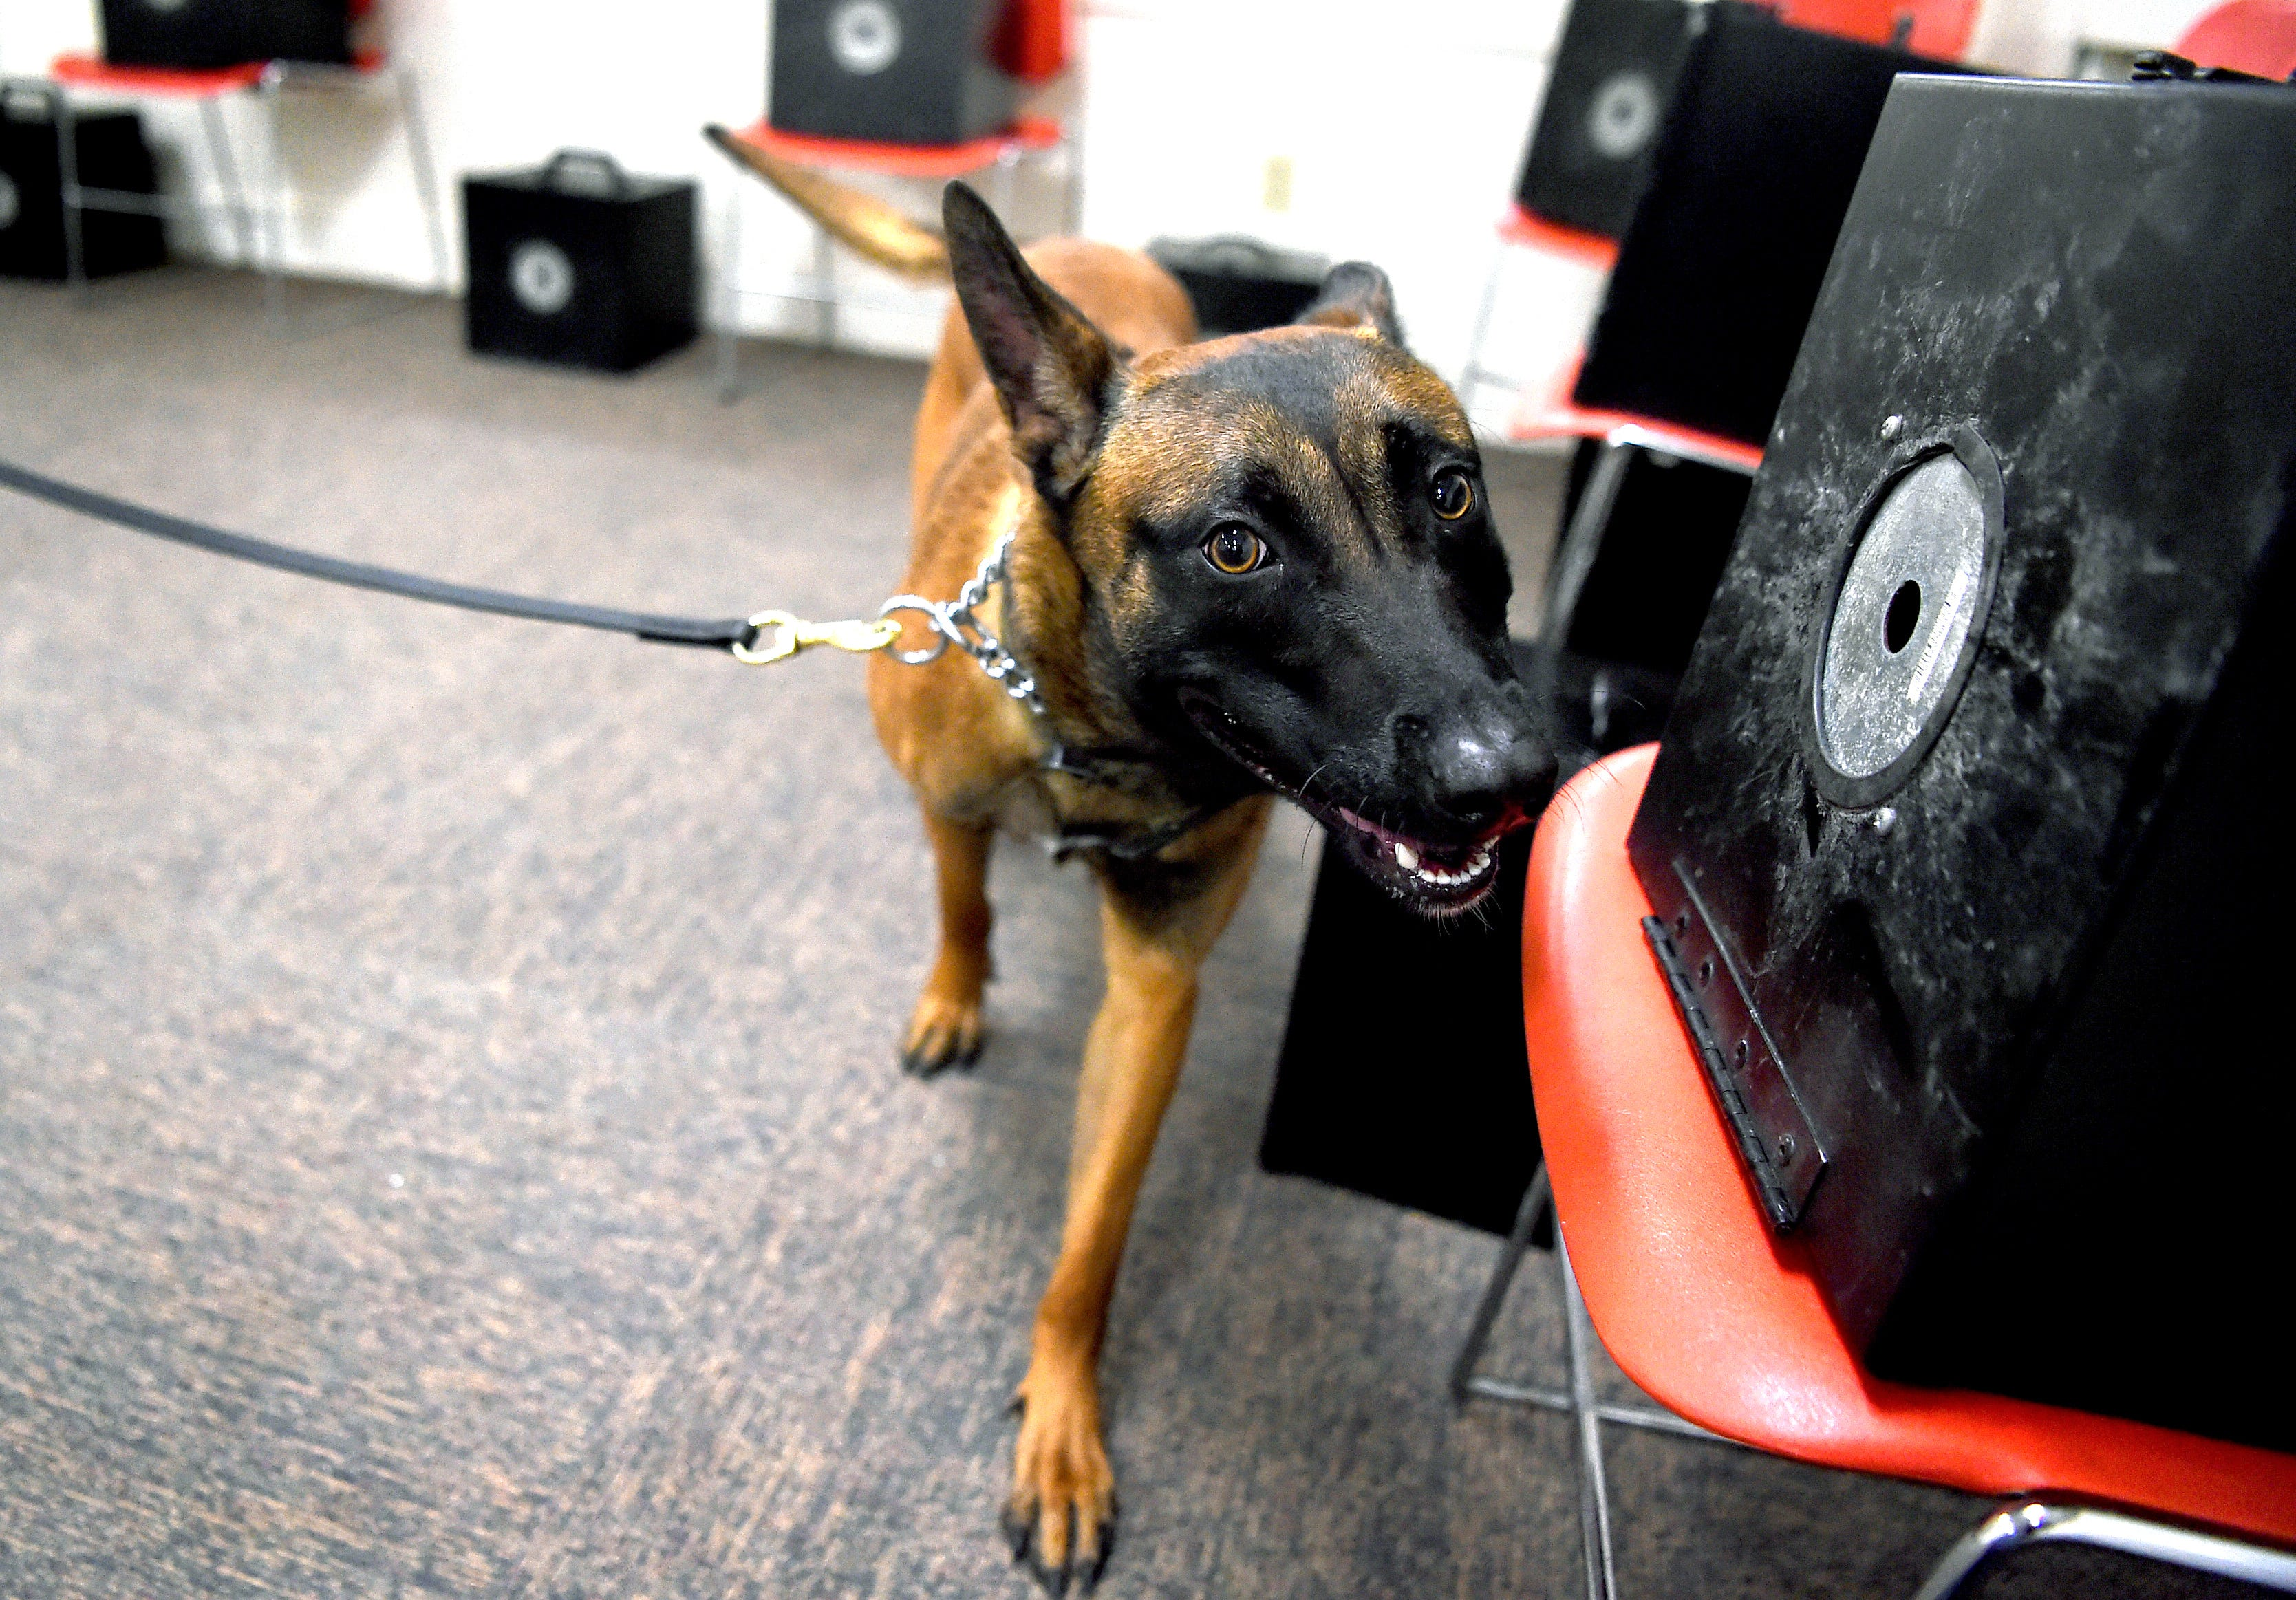 Hundreds of drug dogs could face an uncertain fate if marijuana is legalized in New York